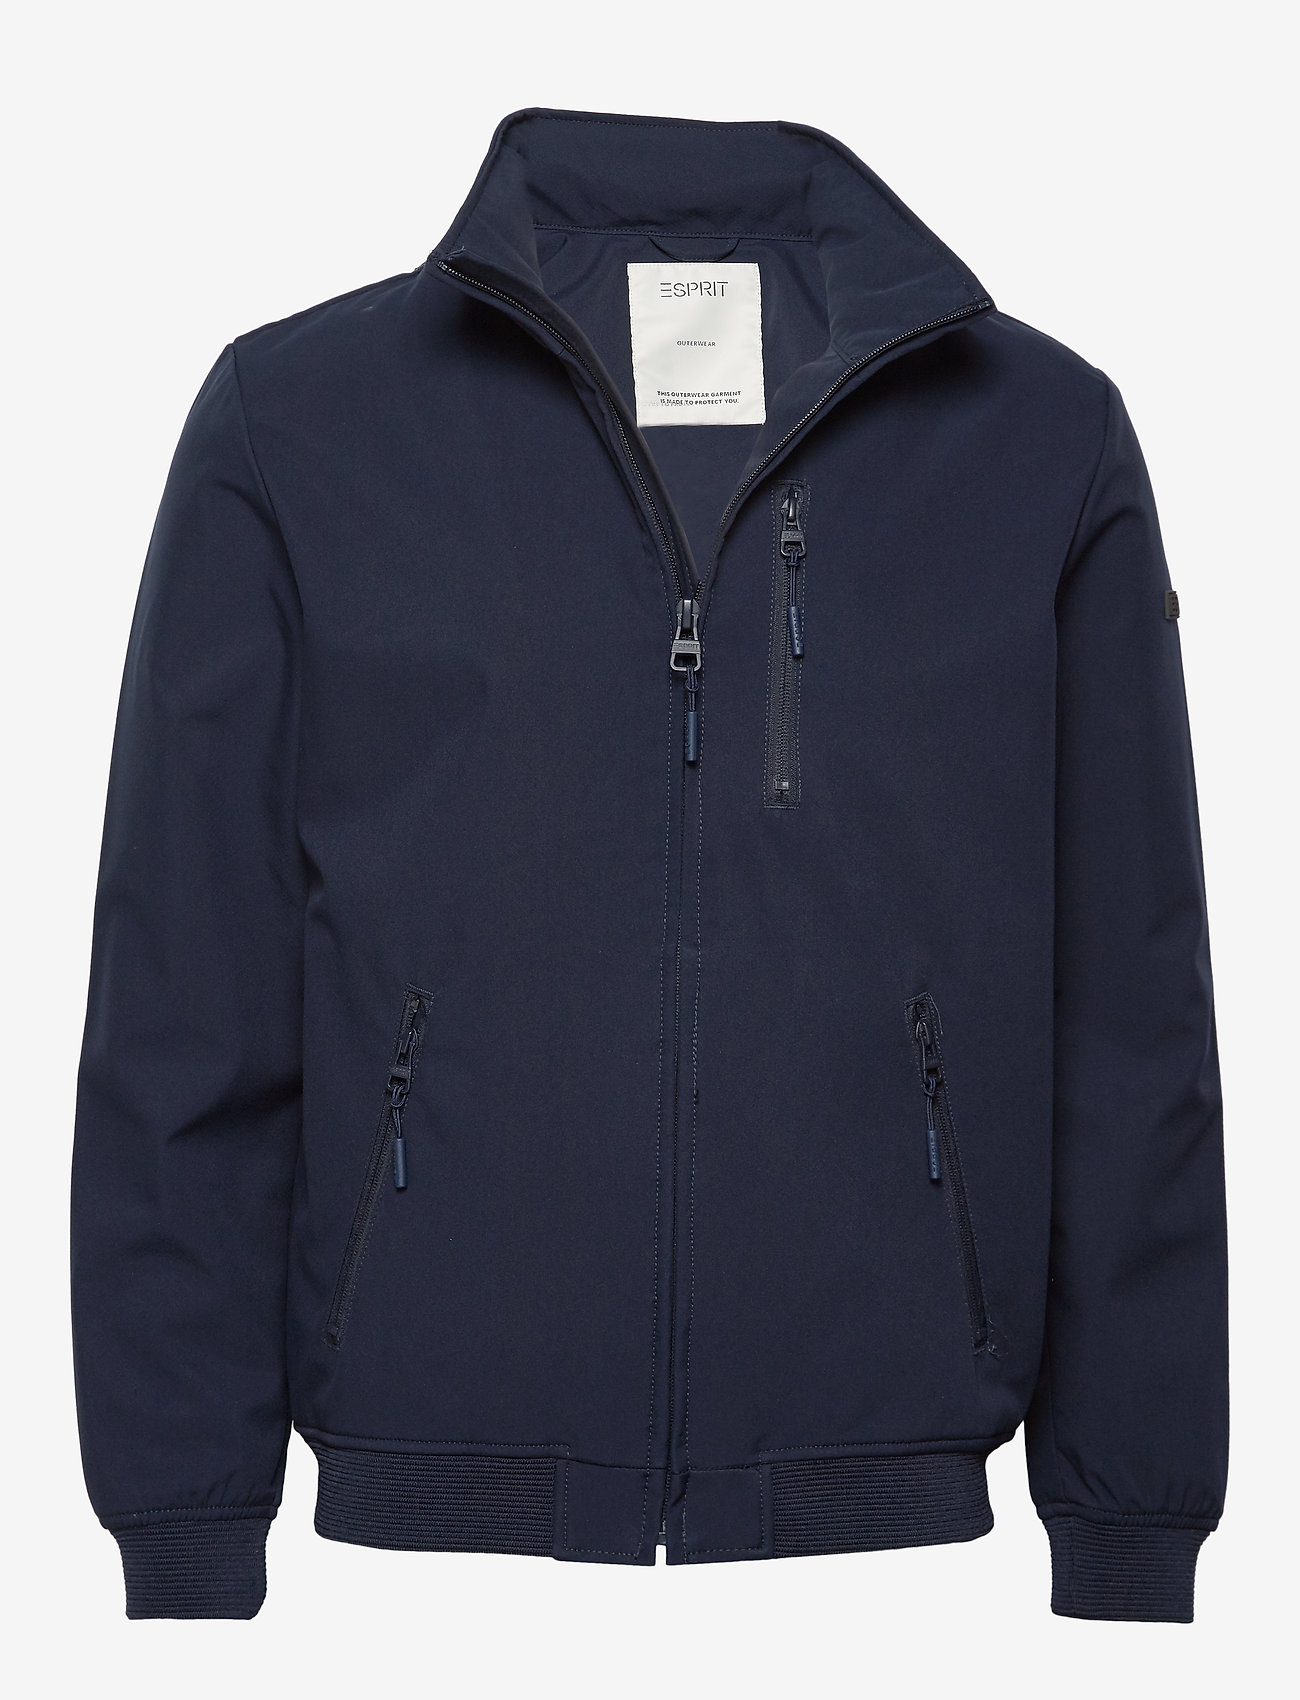 Esprit Casual - Jackets outdoor woven - windjassen - dark blue - 0